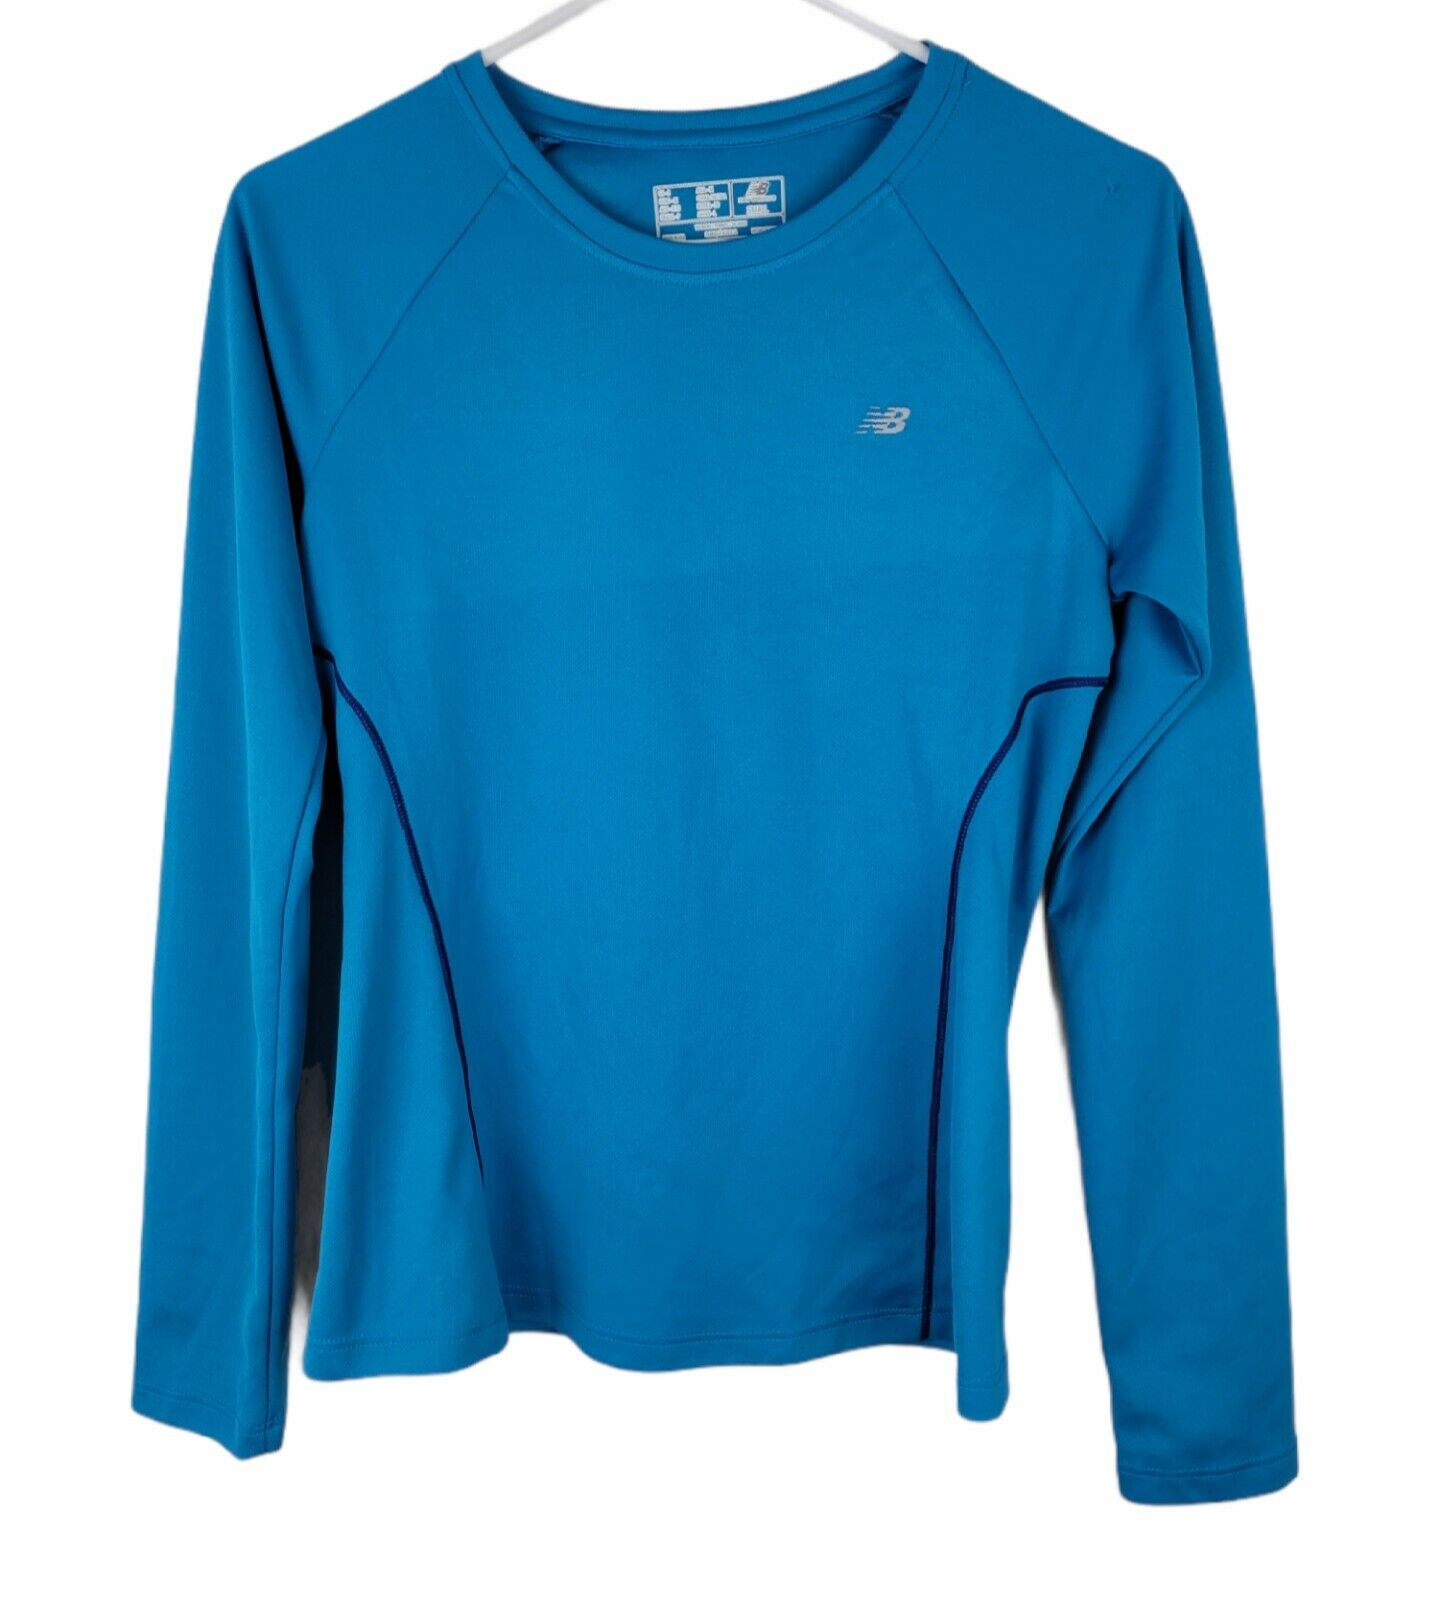 New Balance Size S Women's Running T Shirt Long Sleeves Blue Stretch Made in USA